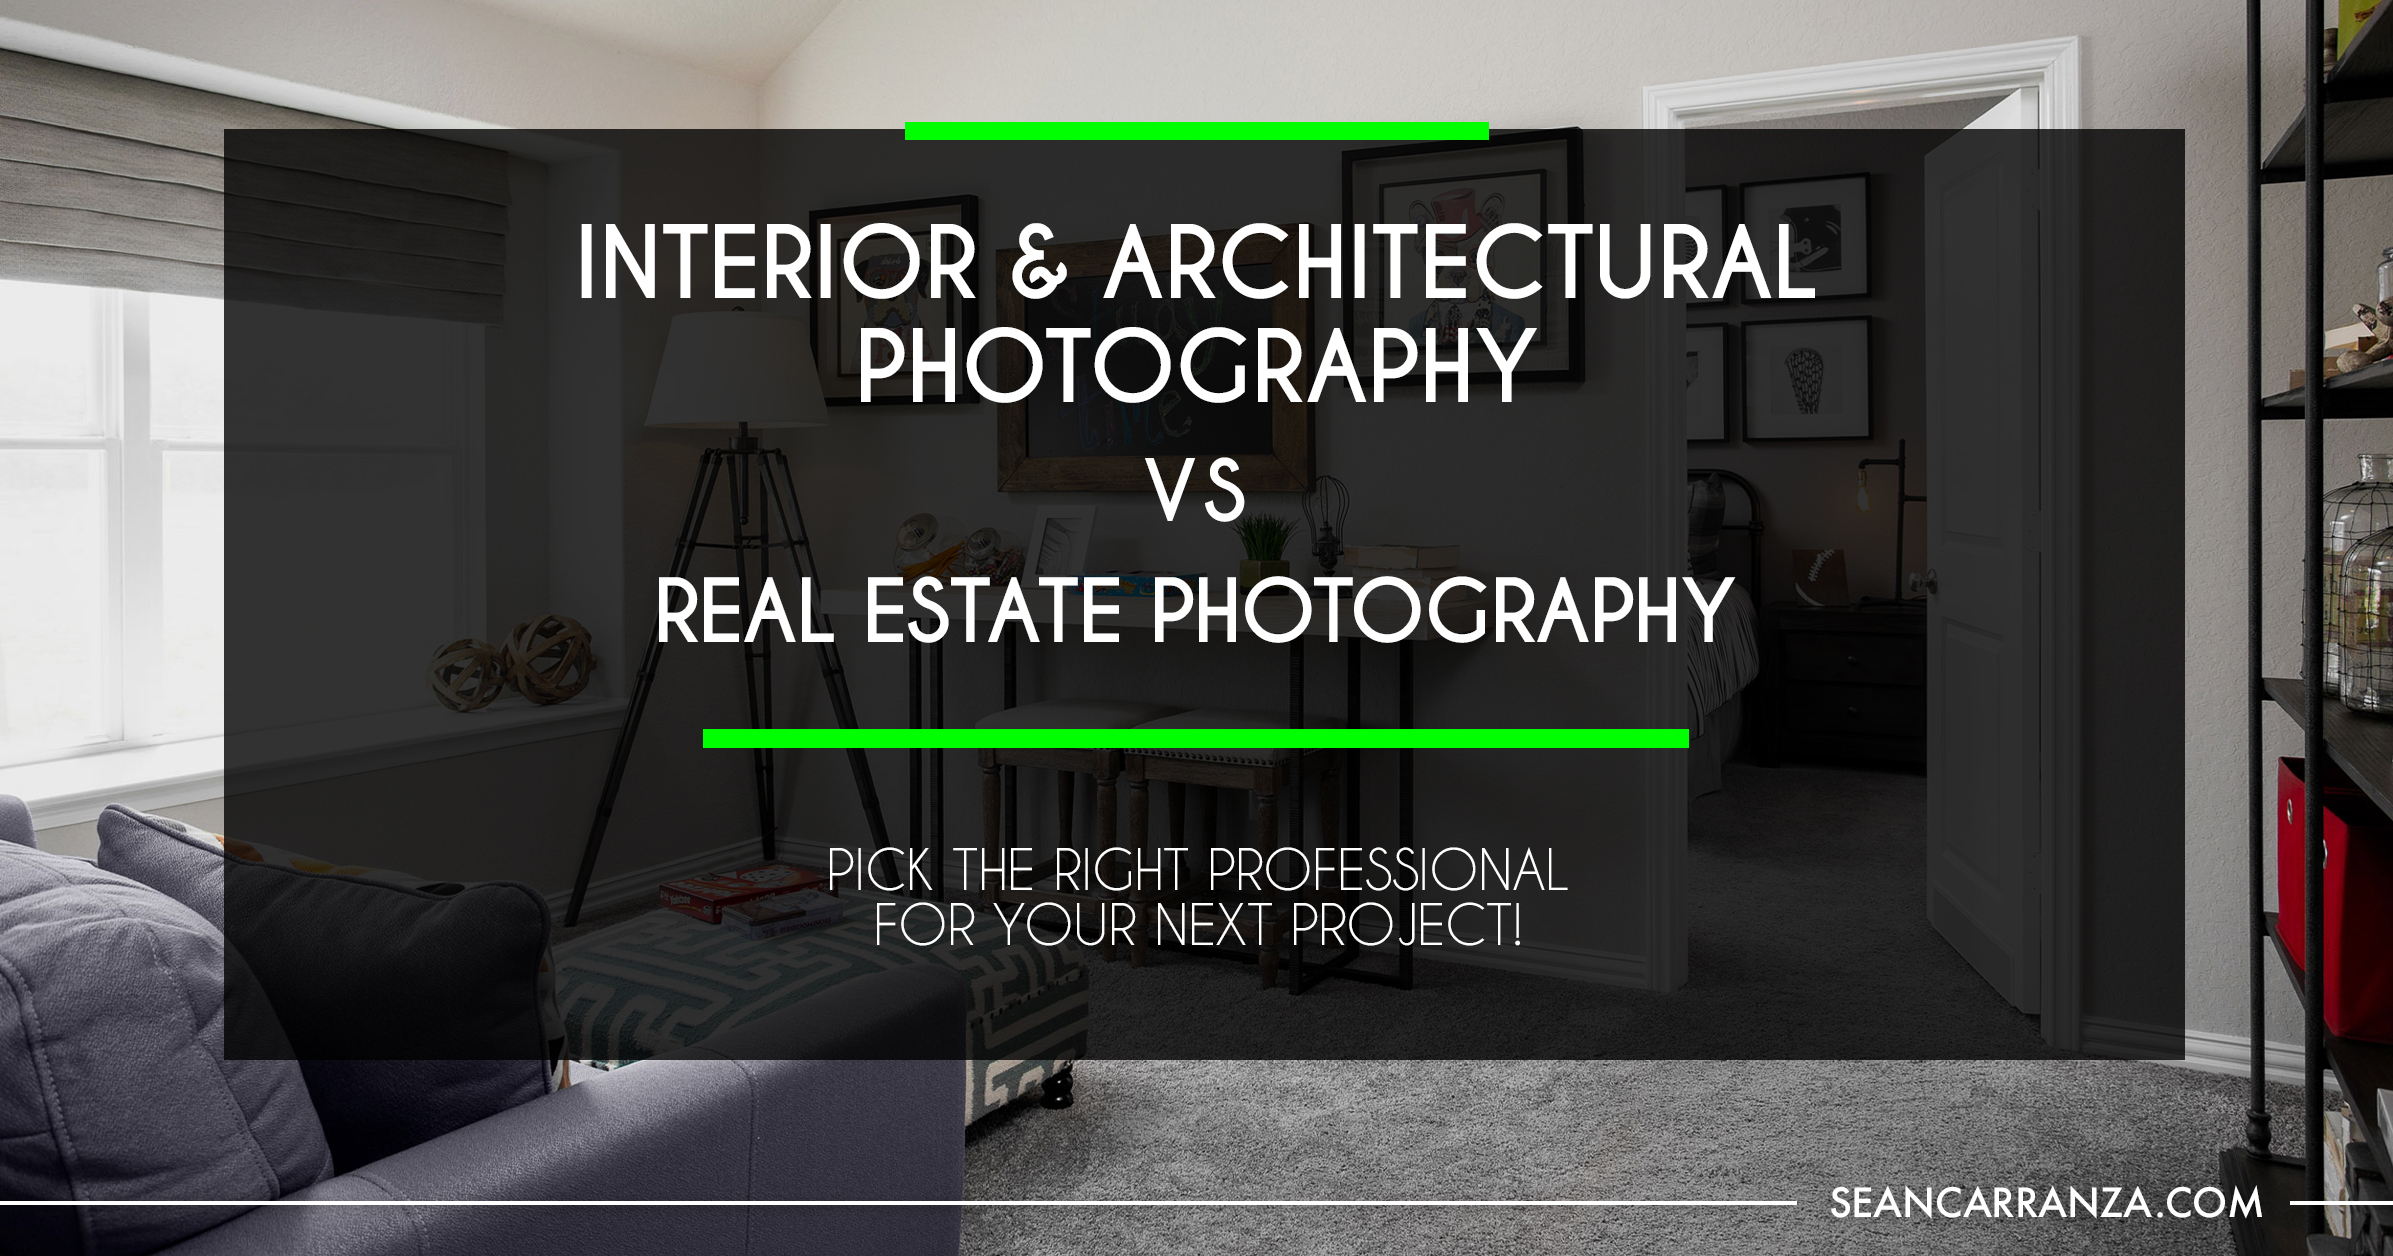 BLOG-Interior-and-Architecture-vs-Real-Estate-Photography.jpg